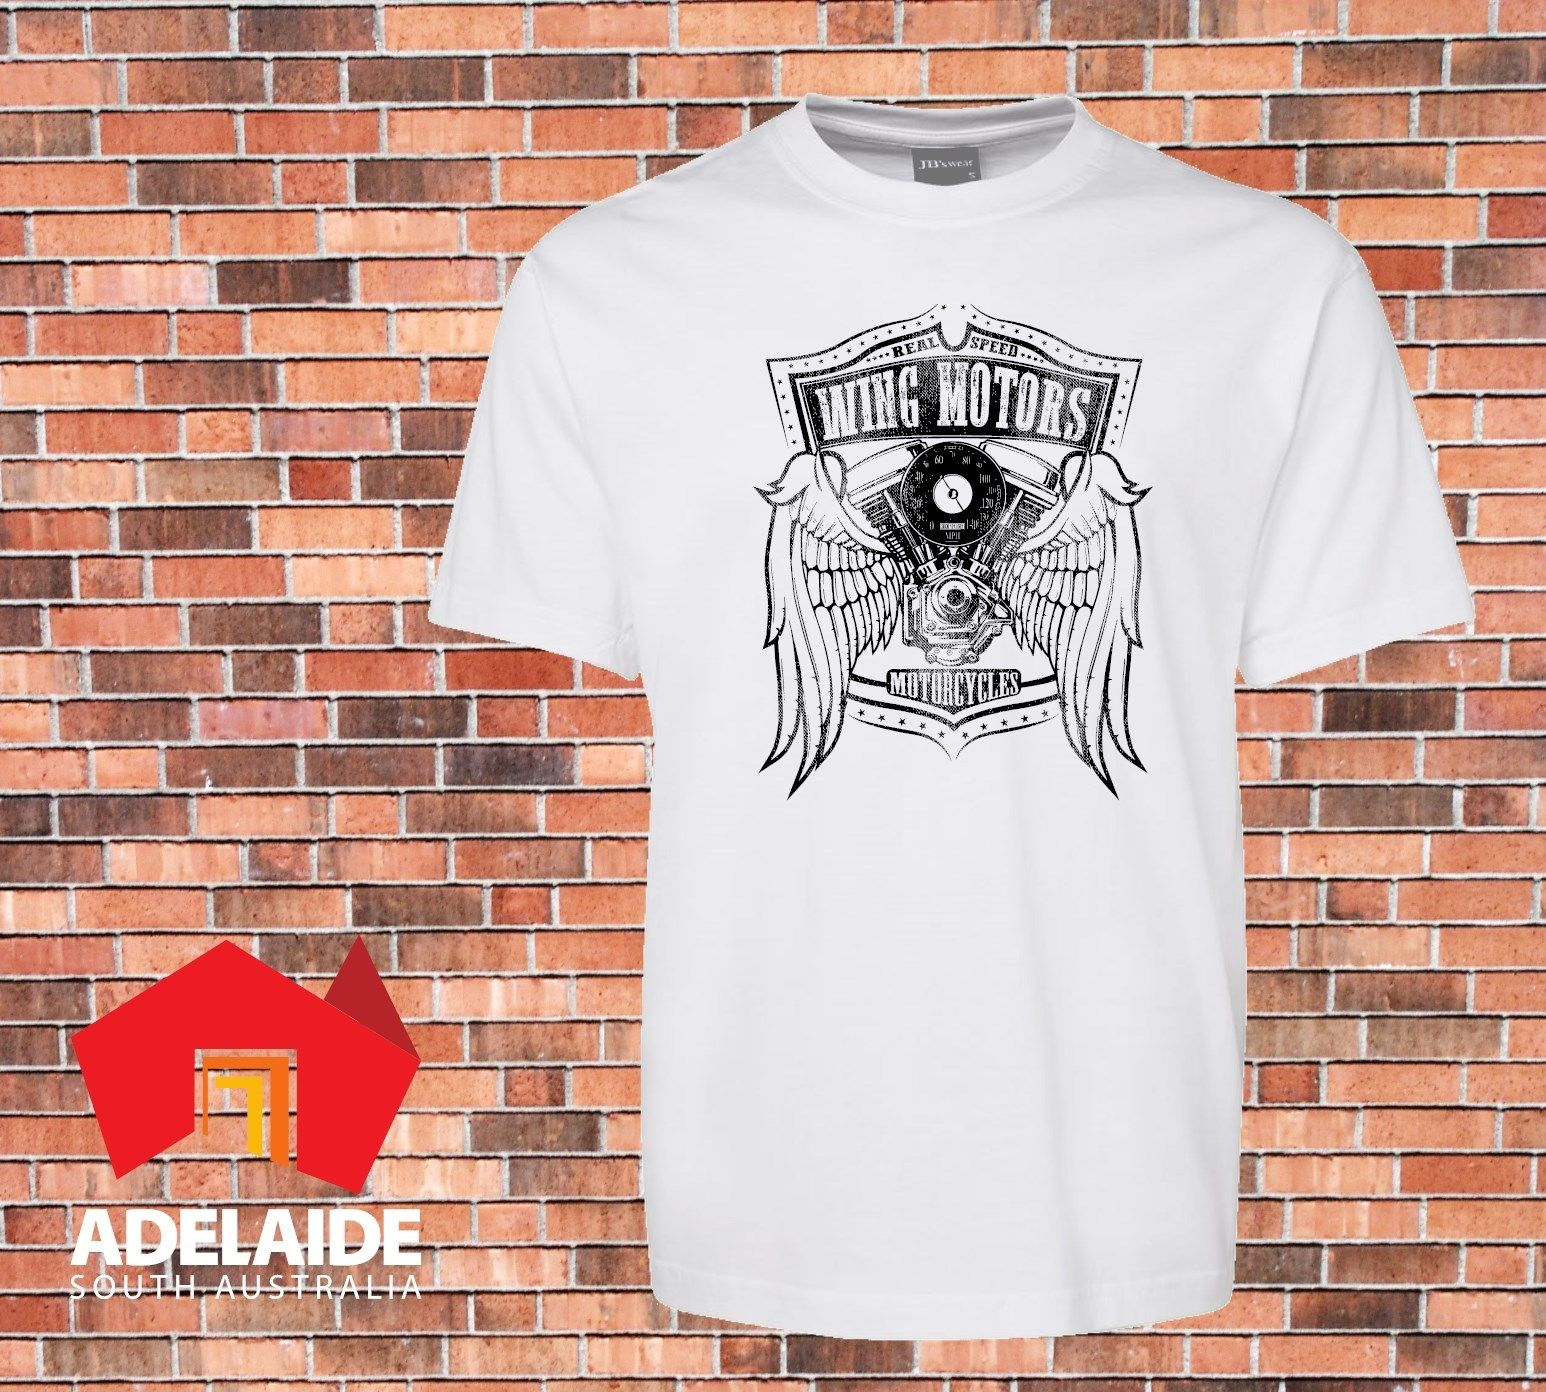 2018 Hot Sale 100% cotton T-shirt Wing motors Motorcycles Cool Vintage Retro Design Sizes to 3XL Tee shirt